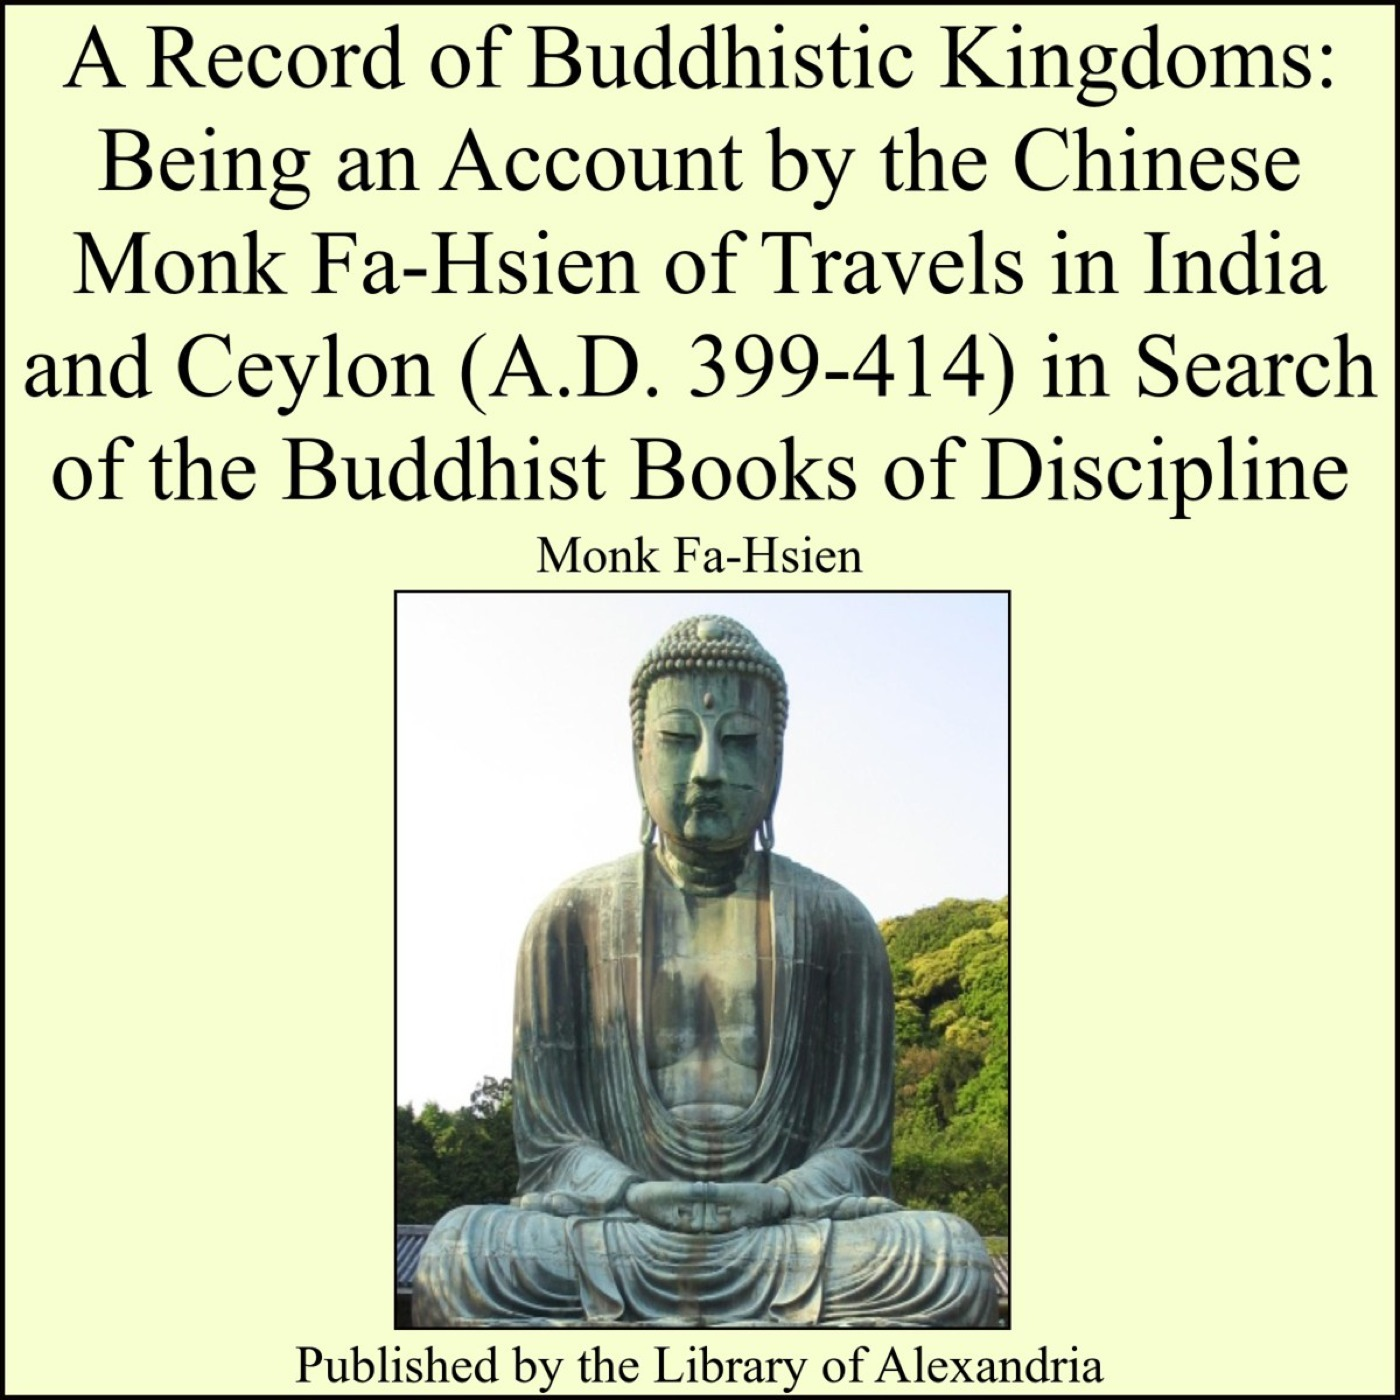 Monk Fa-Hsien - A Record of Buddhistic Kingdoms: Being an Account by the Chinese Monk Fa-Hsien of Travels in India and Ceylon (A.D. 399-414) in Search of the Buddhist Books of Discipline